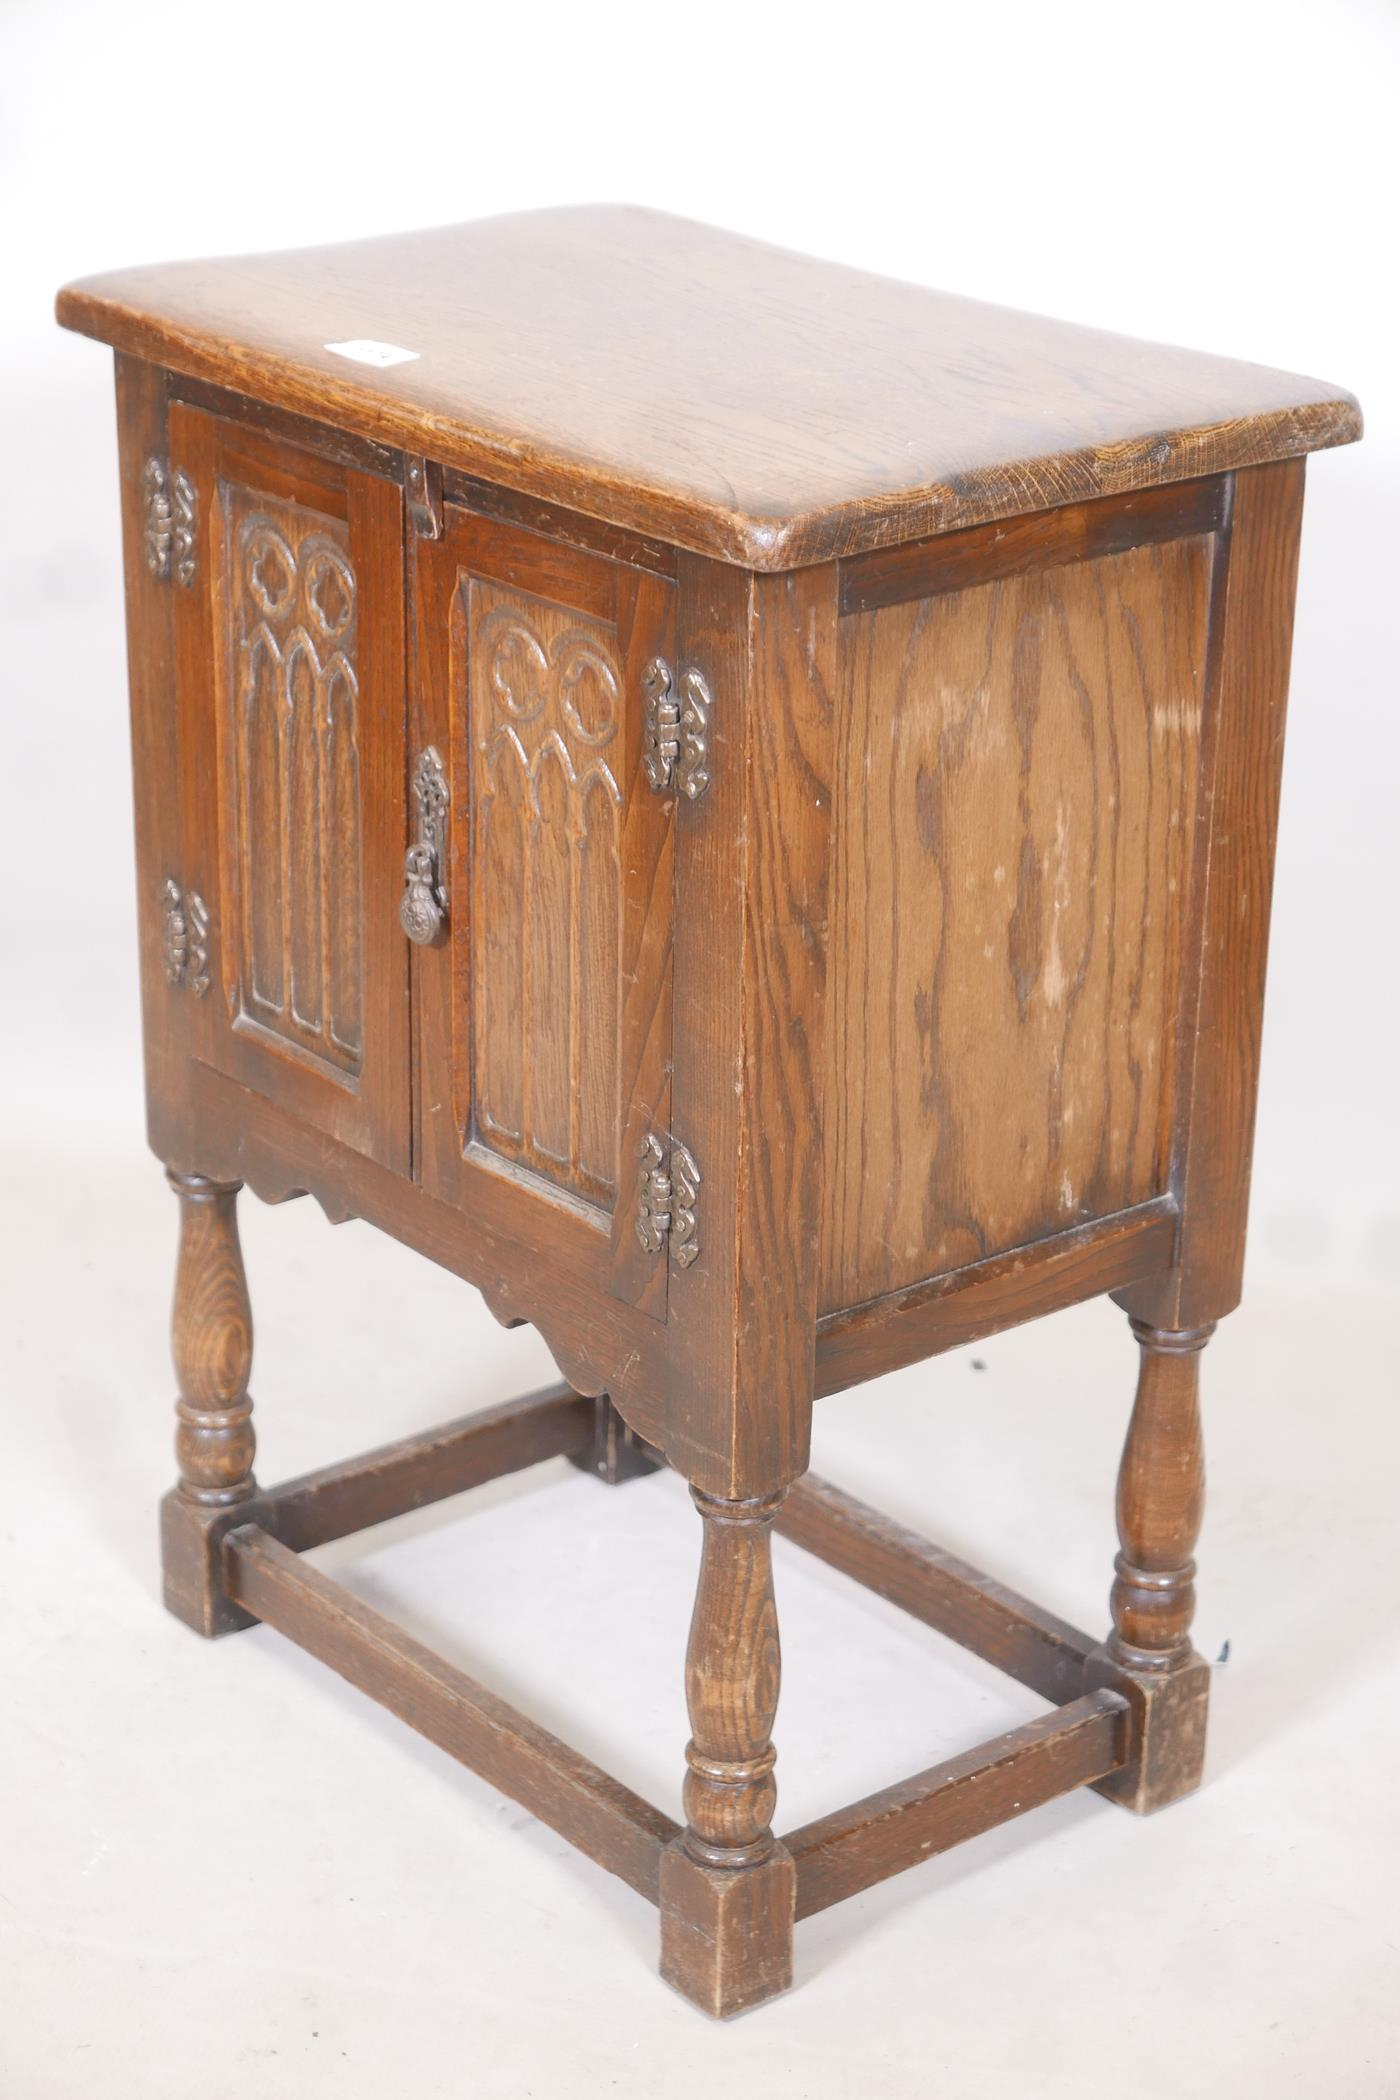 """An oak two door cabinet with Gothic style carving, 20"""" x 13"""" x 27"""" - Image 2 of 2"""